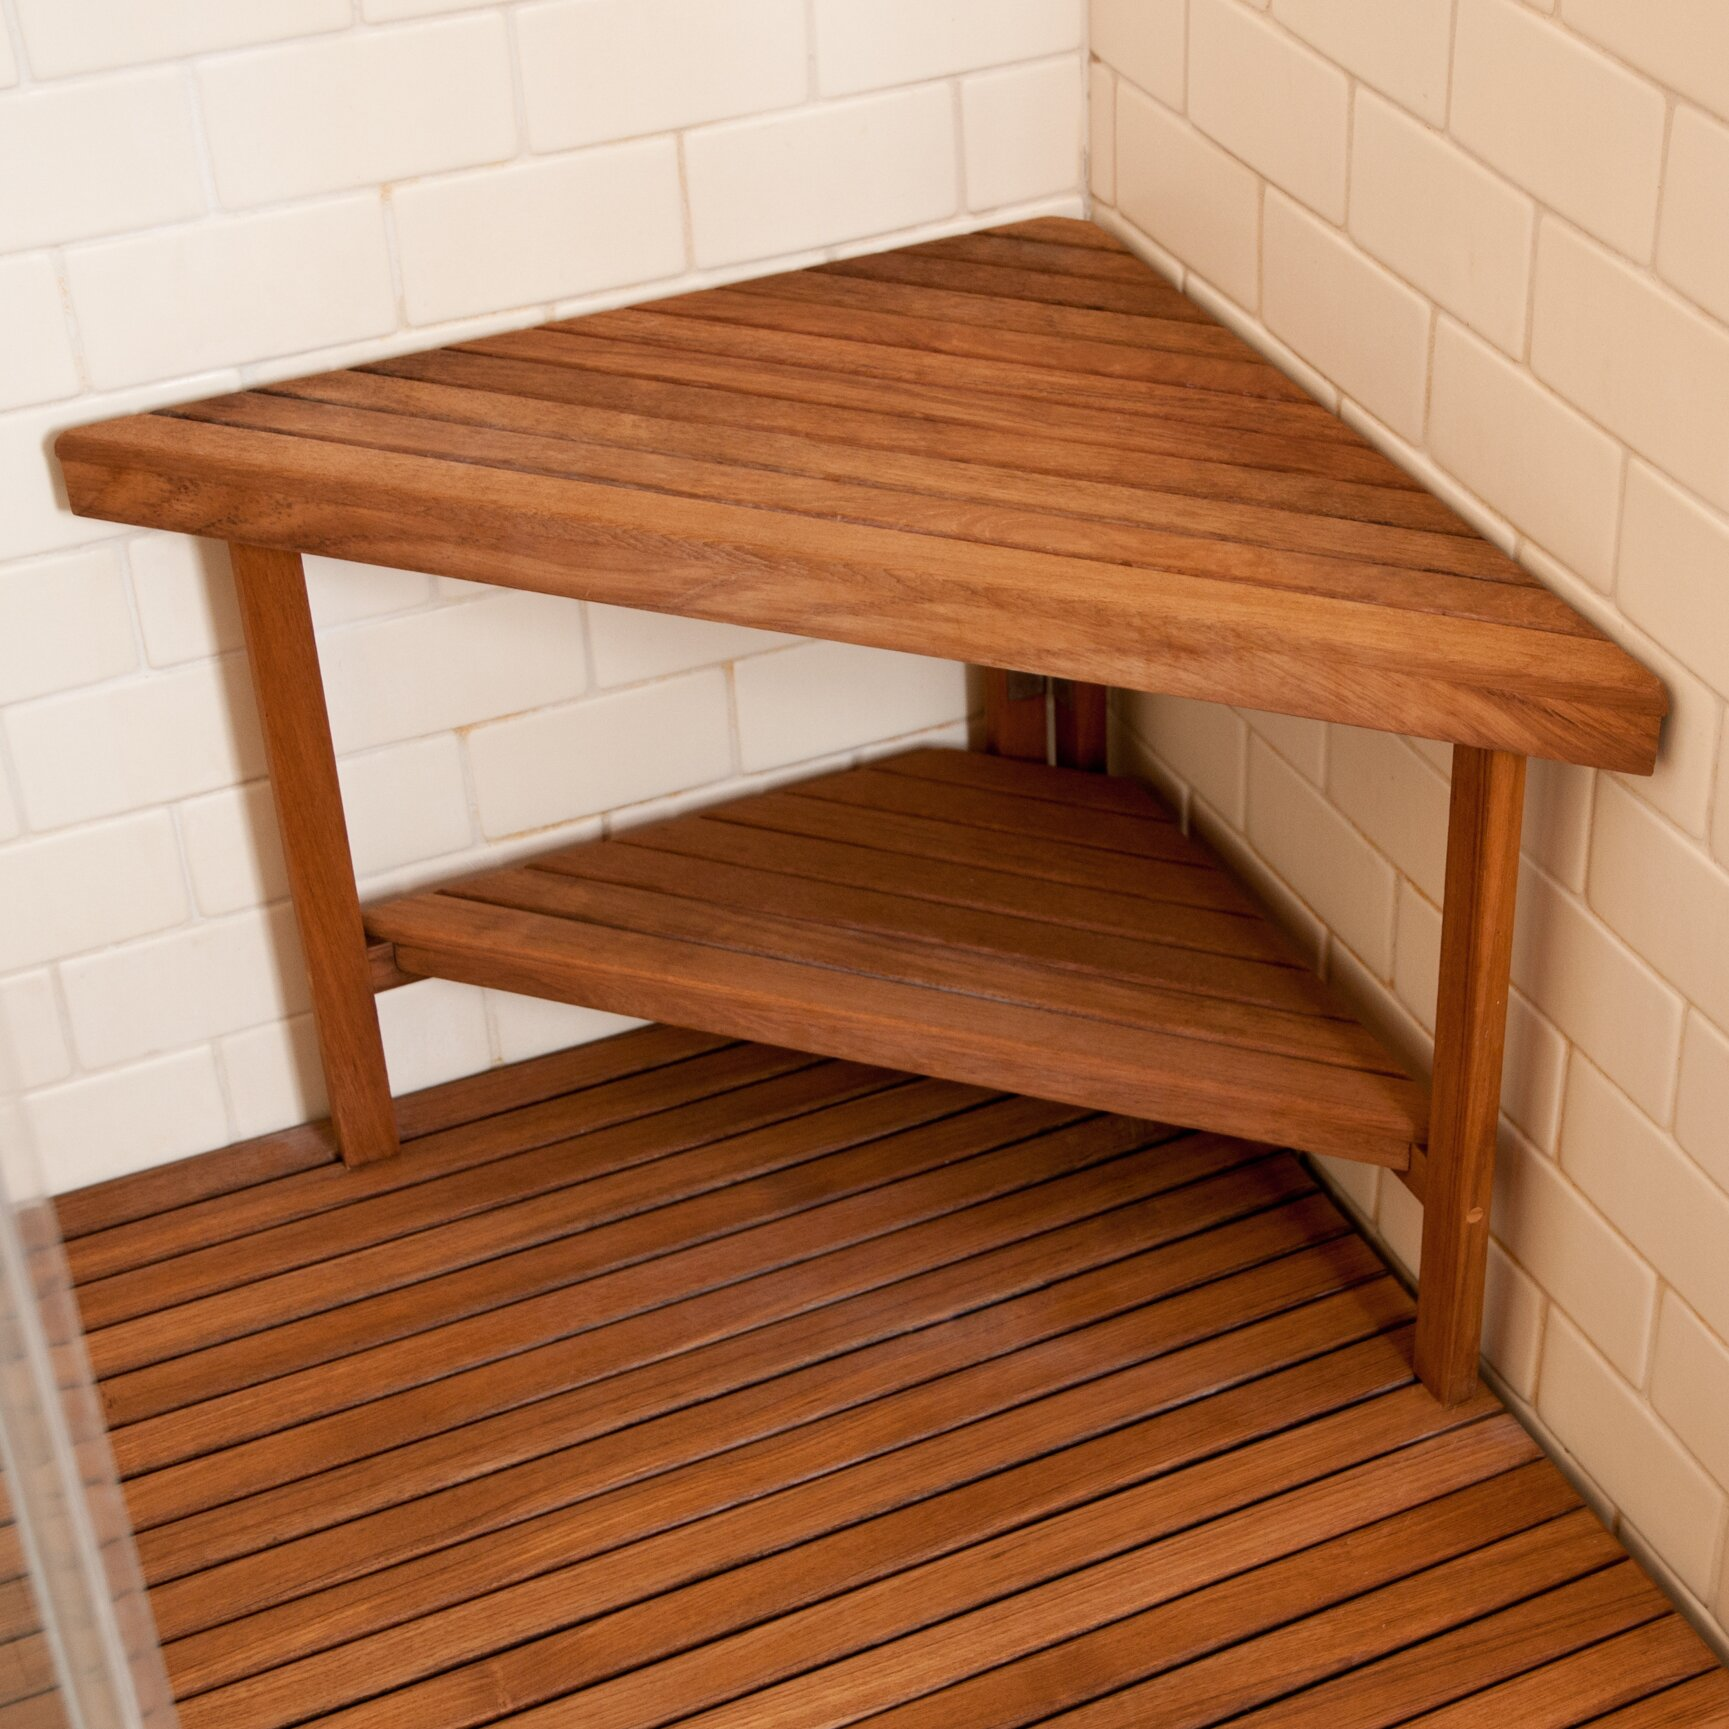 Teakworks4u Deluxe Teak Corner Shower Bench With Optional